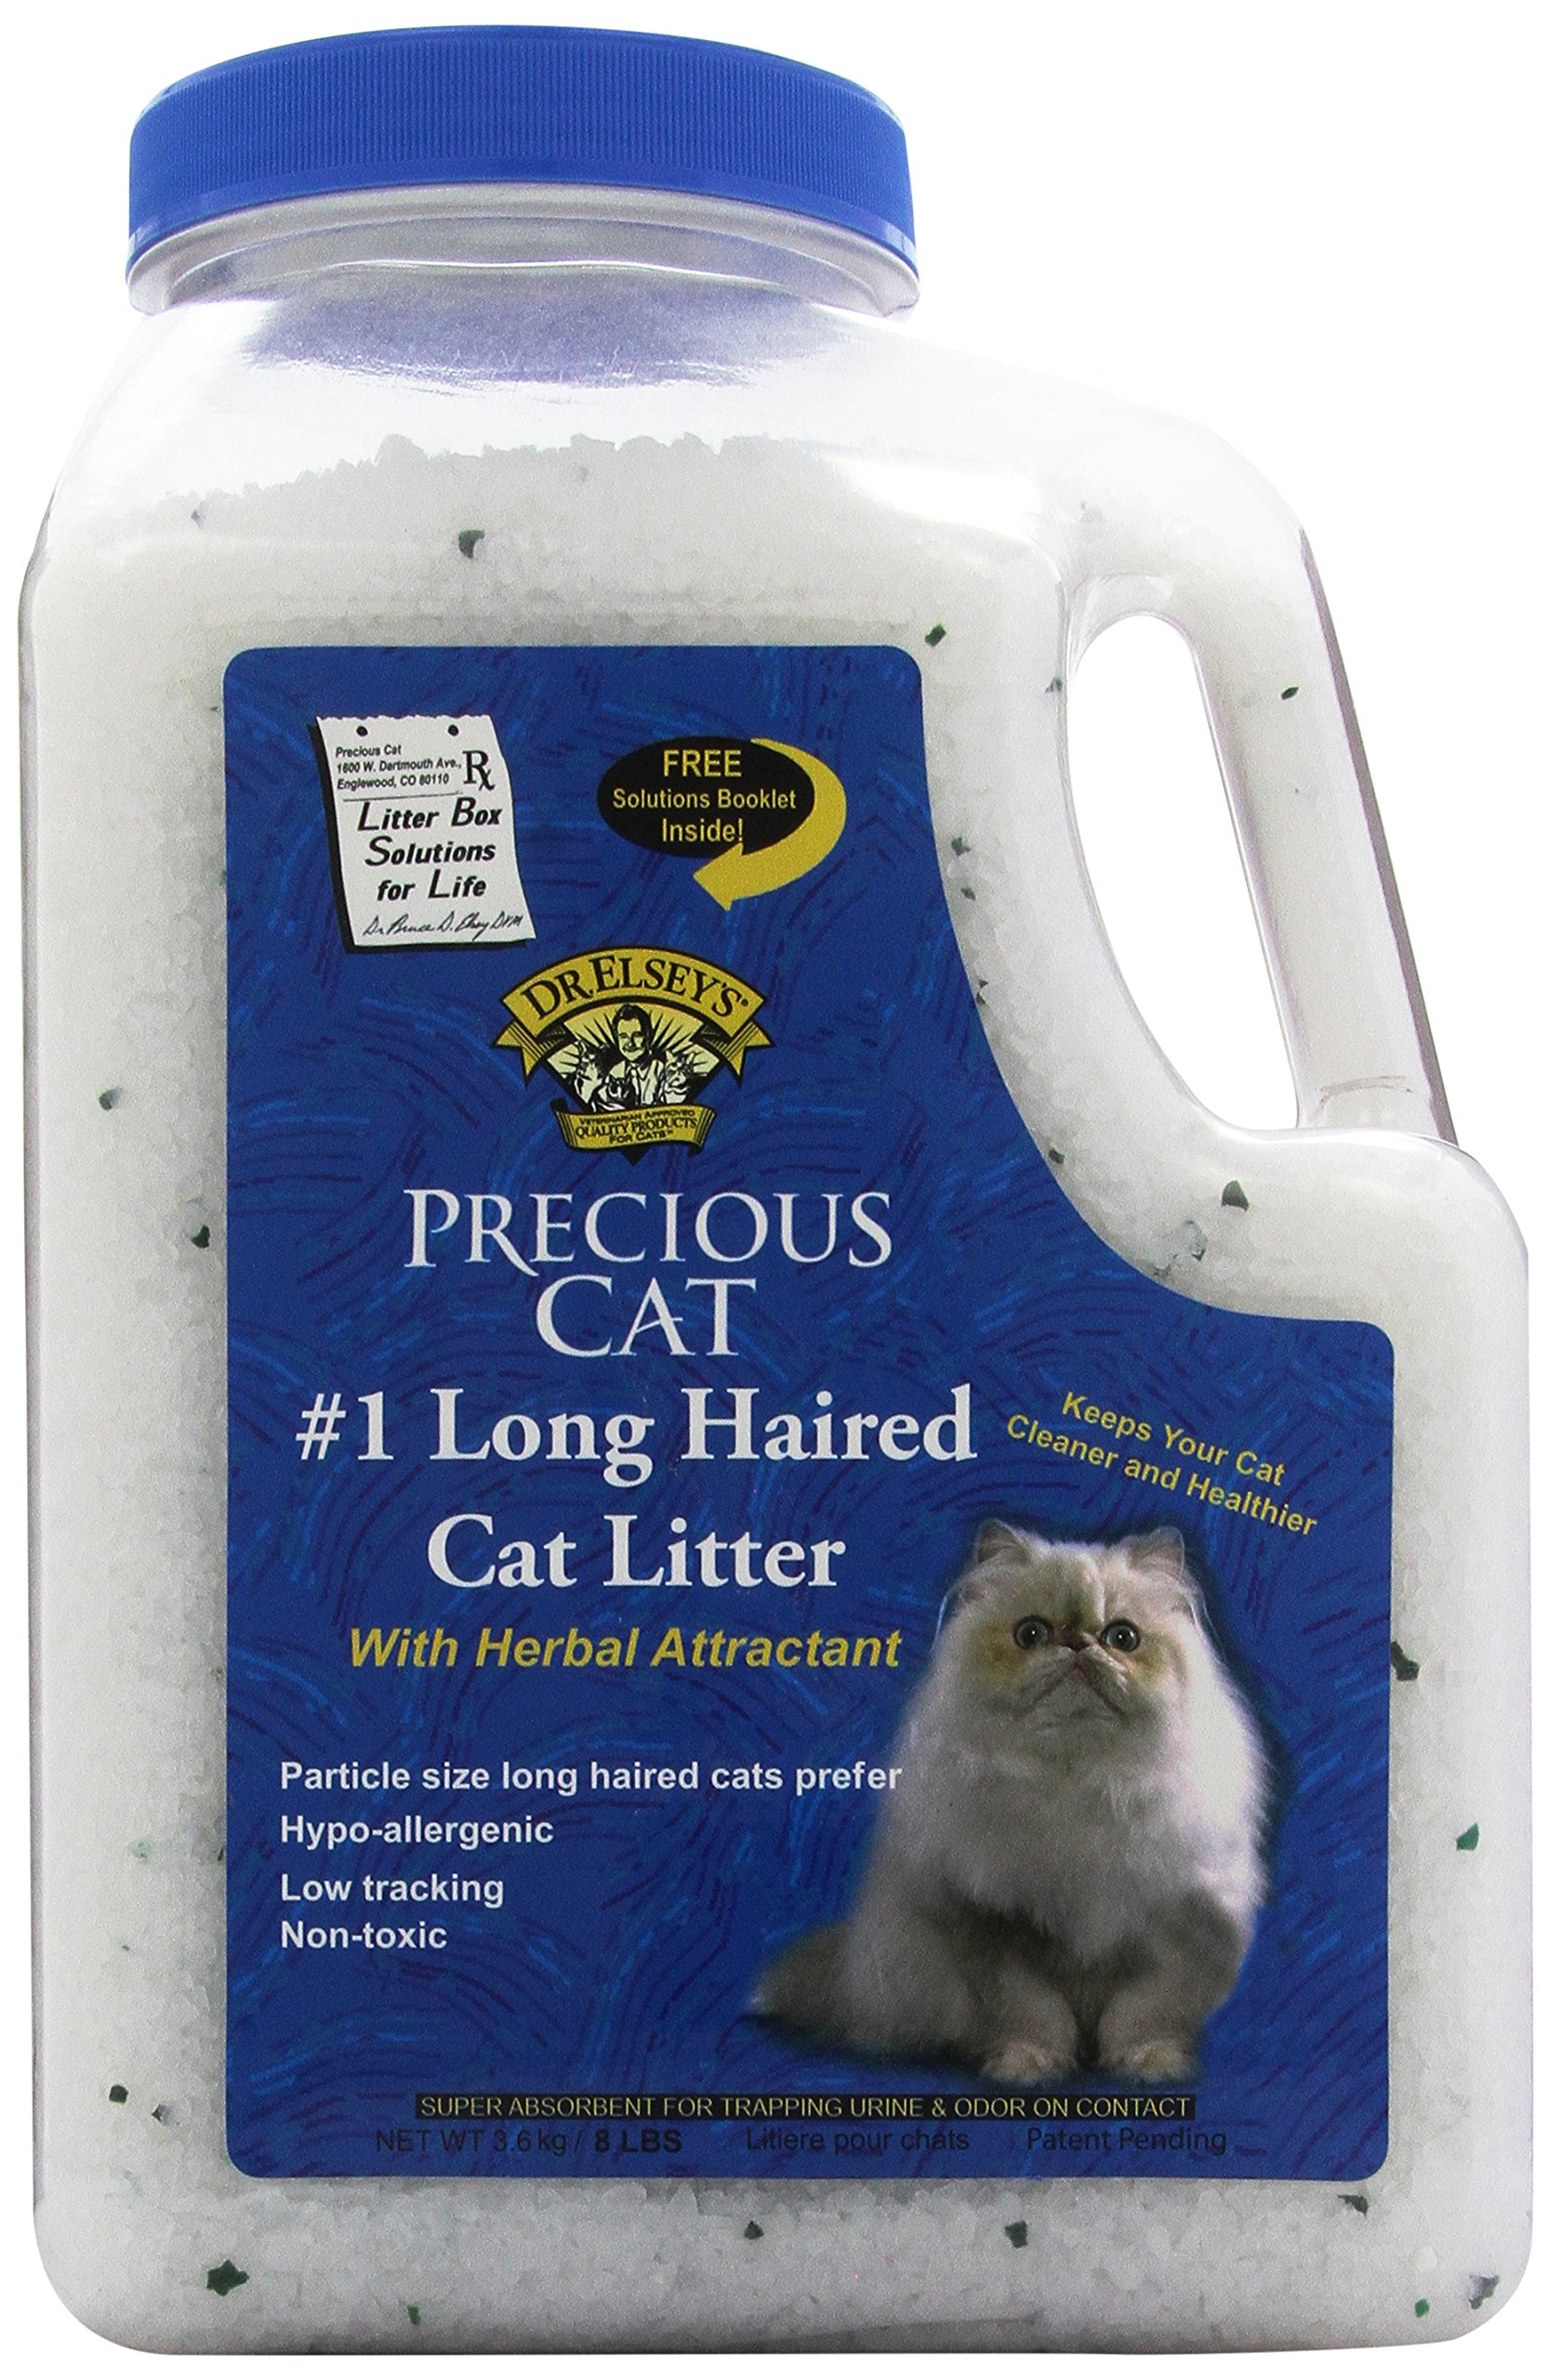 Is Silica Gel Cat Litter Safe